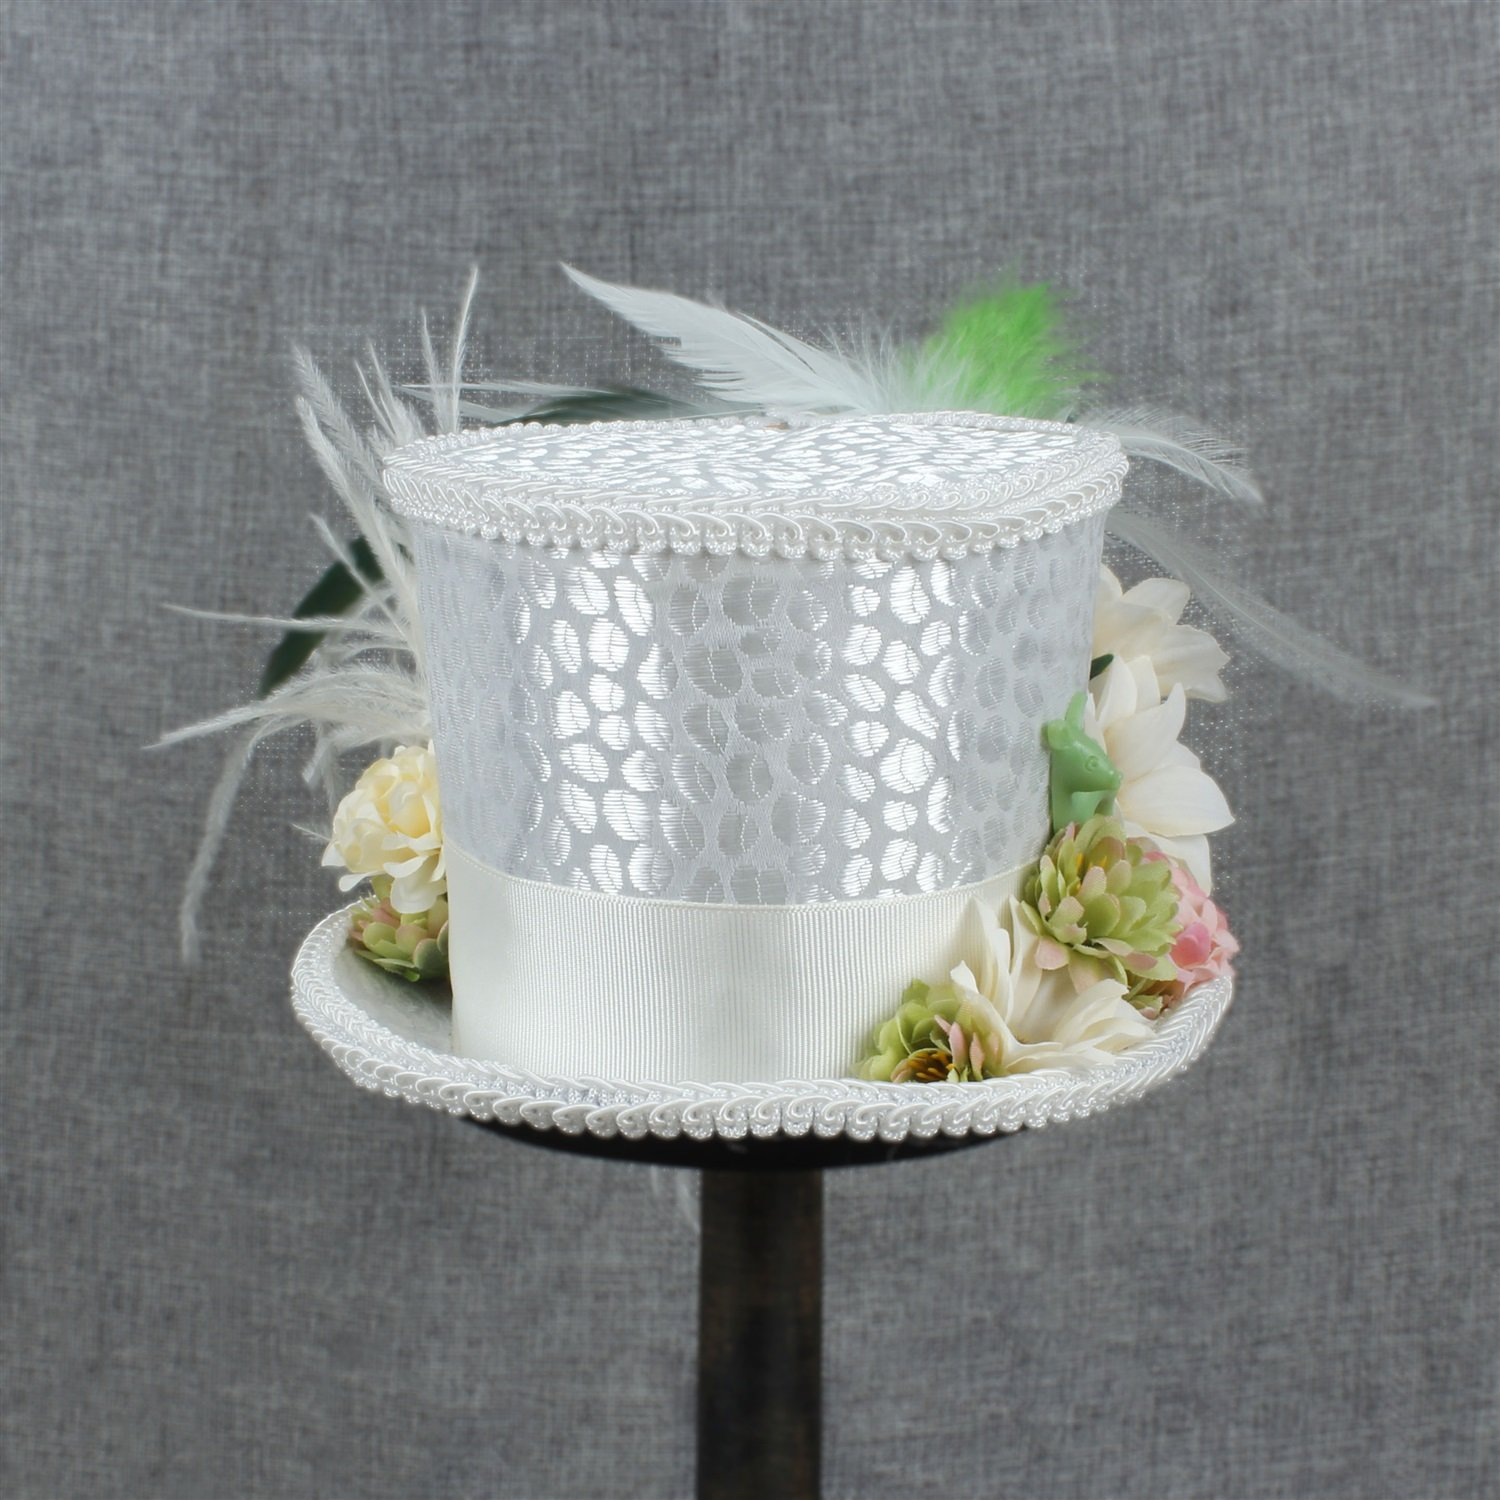 LL Women's White Mini Top Hat Tea Hat Mad Hatter Tea hat, Bridal Hat, Kentucky Derby hat (Color : White, Size : 25-30cm) by LL (Image #4)